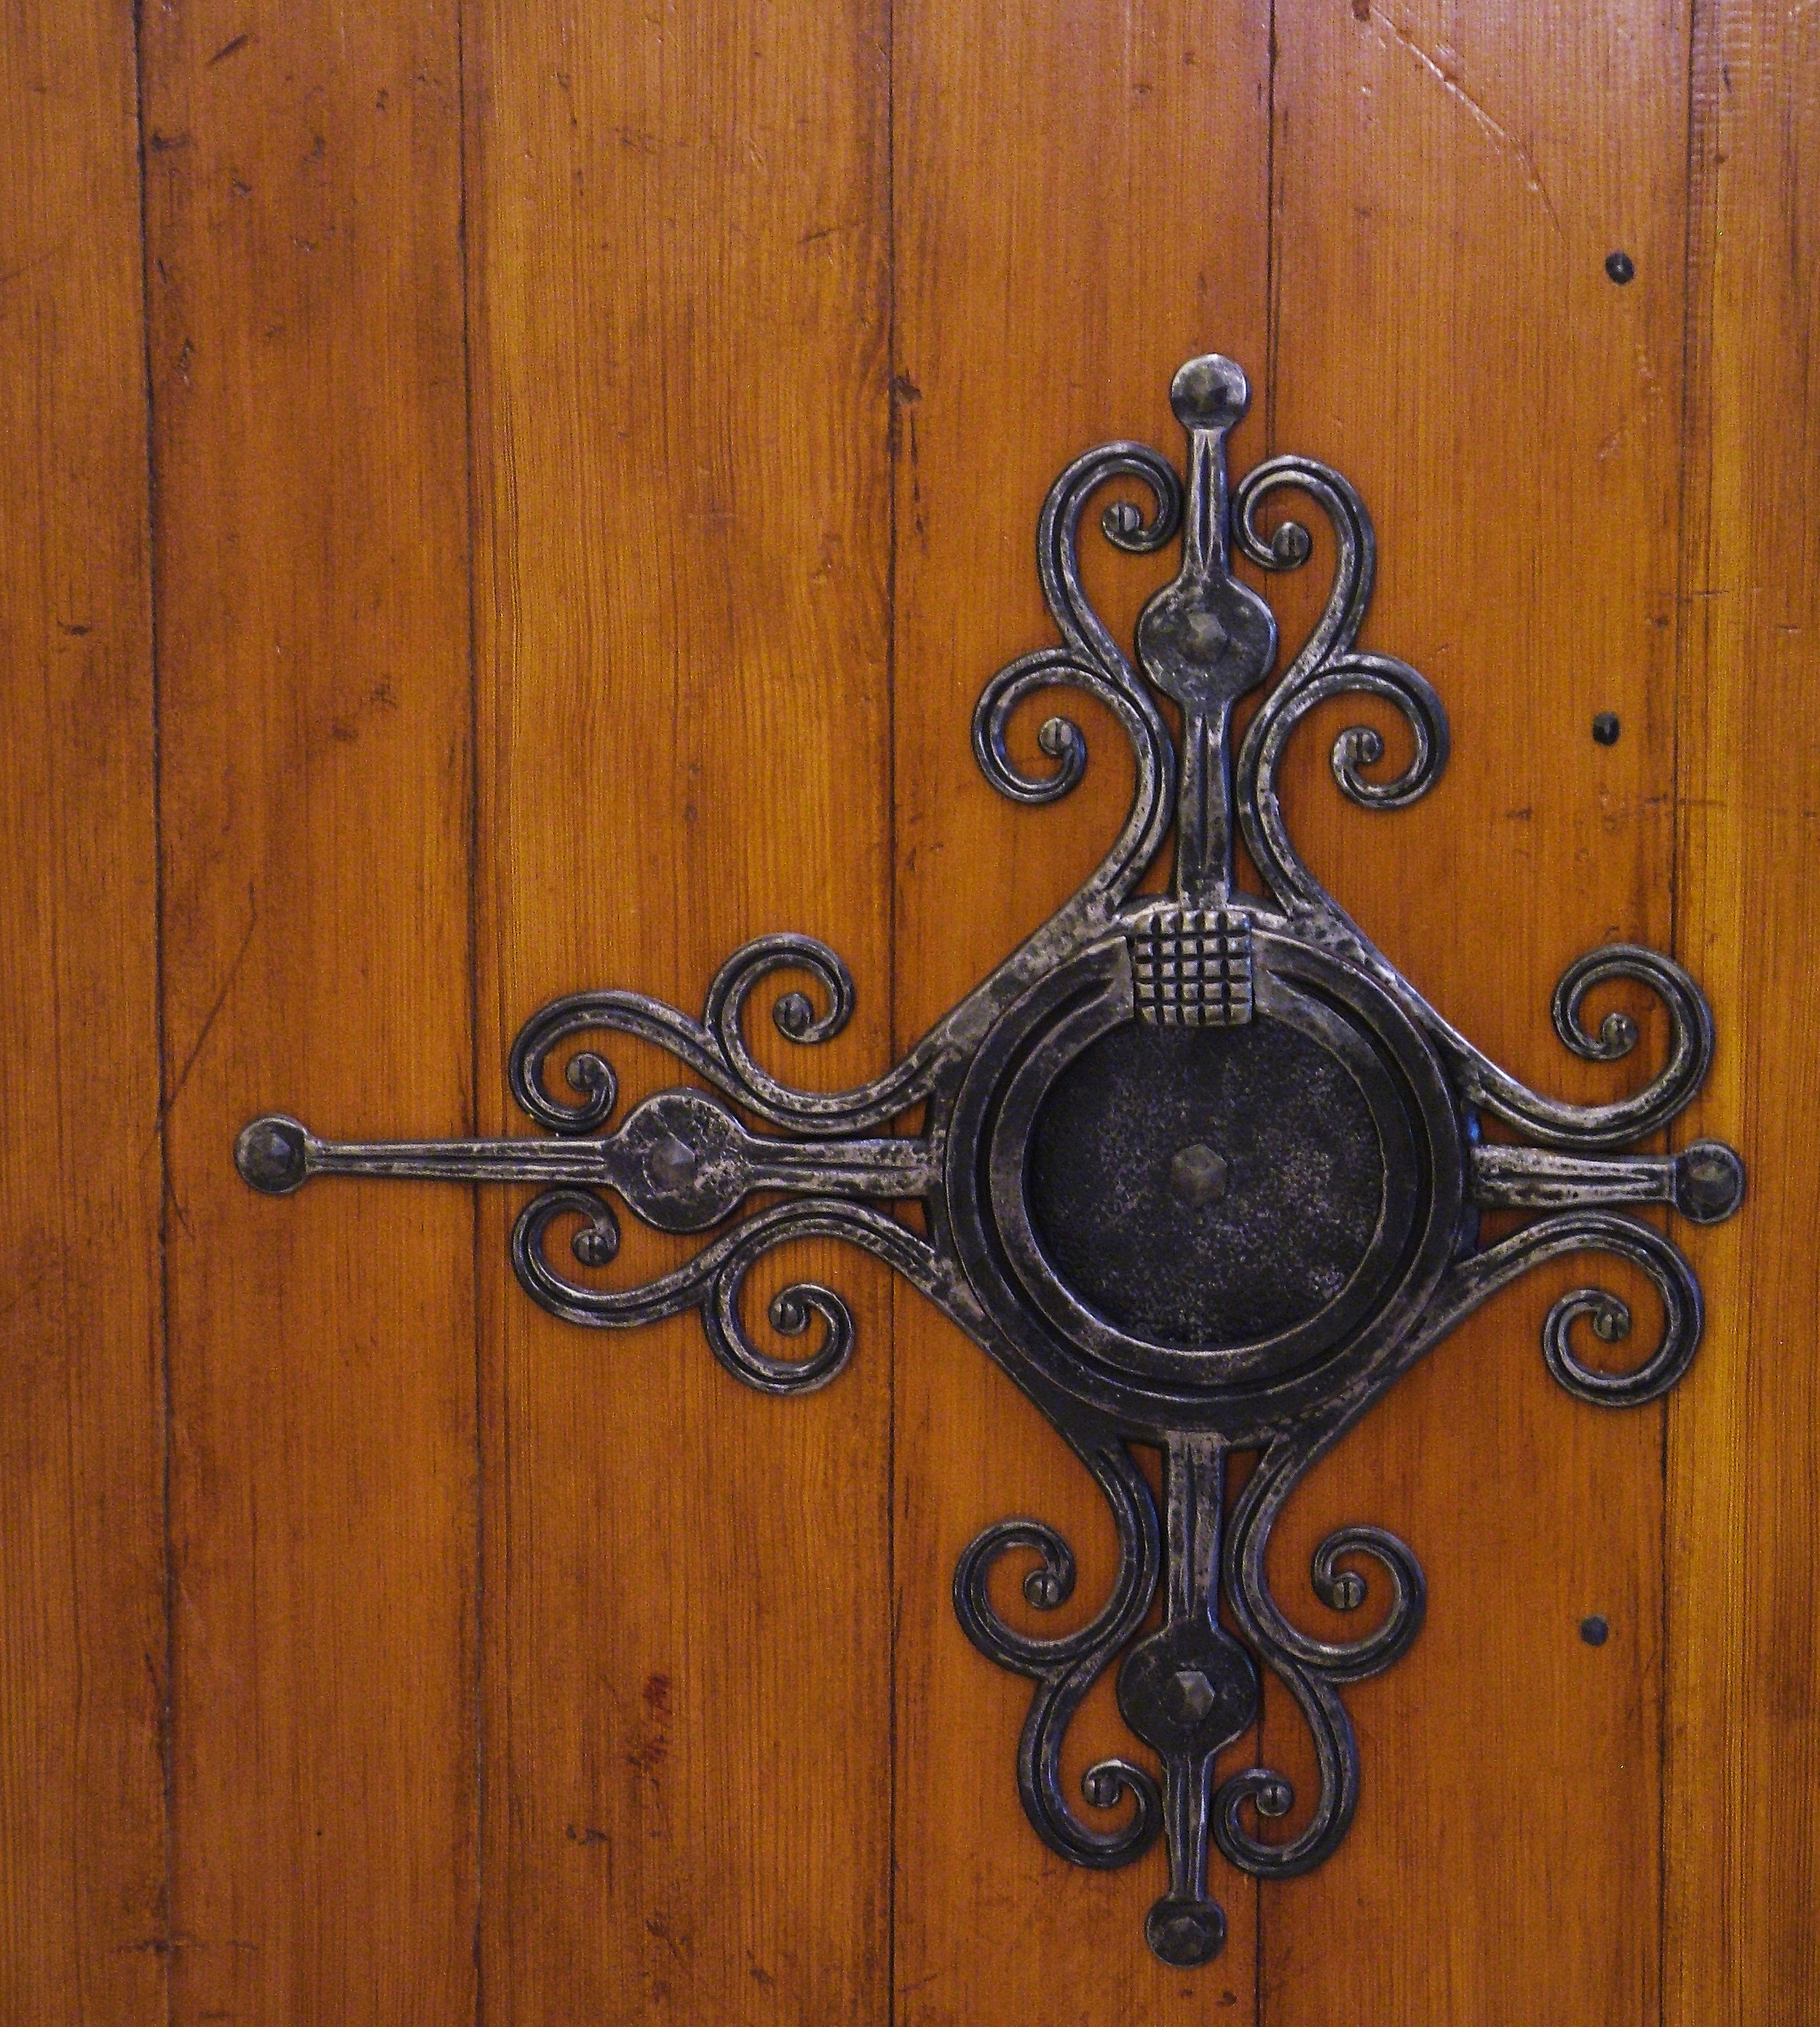 Detail of Door Pull and Escutcheon